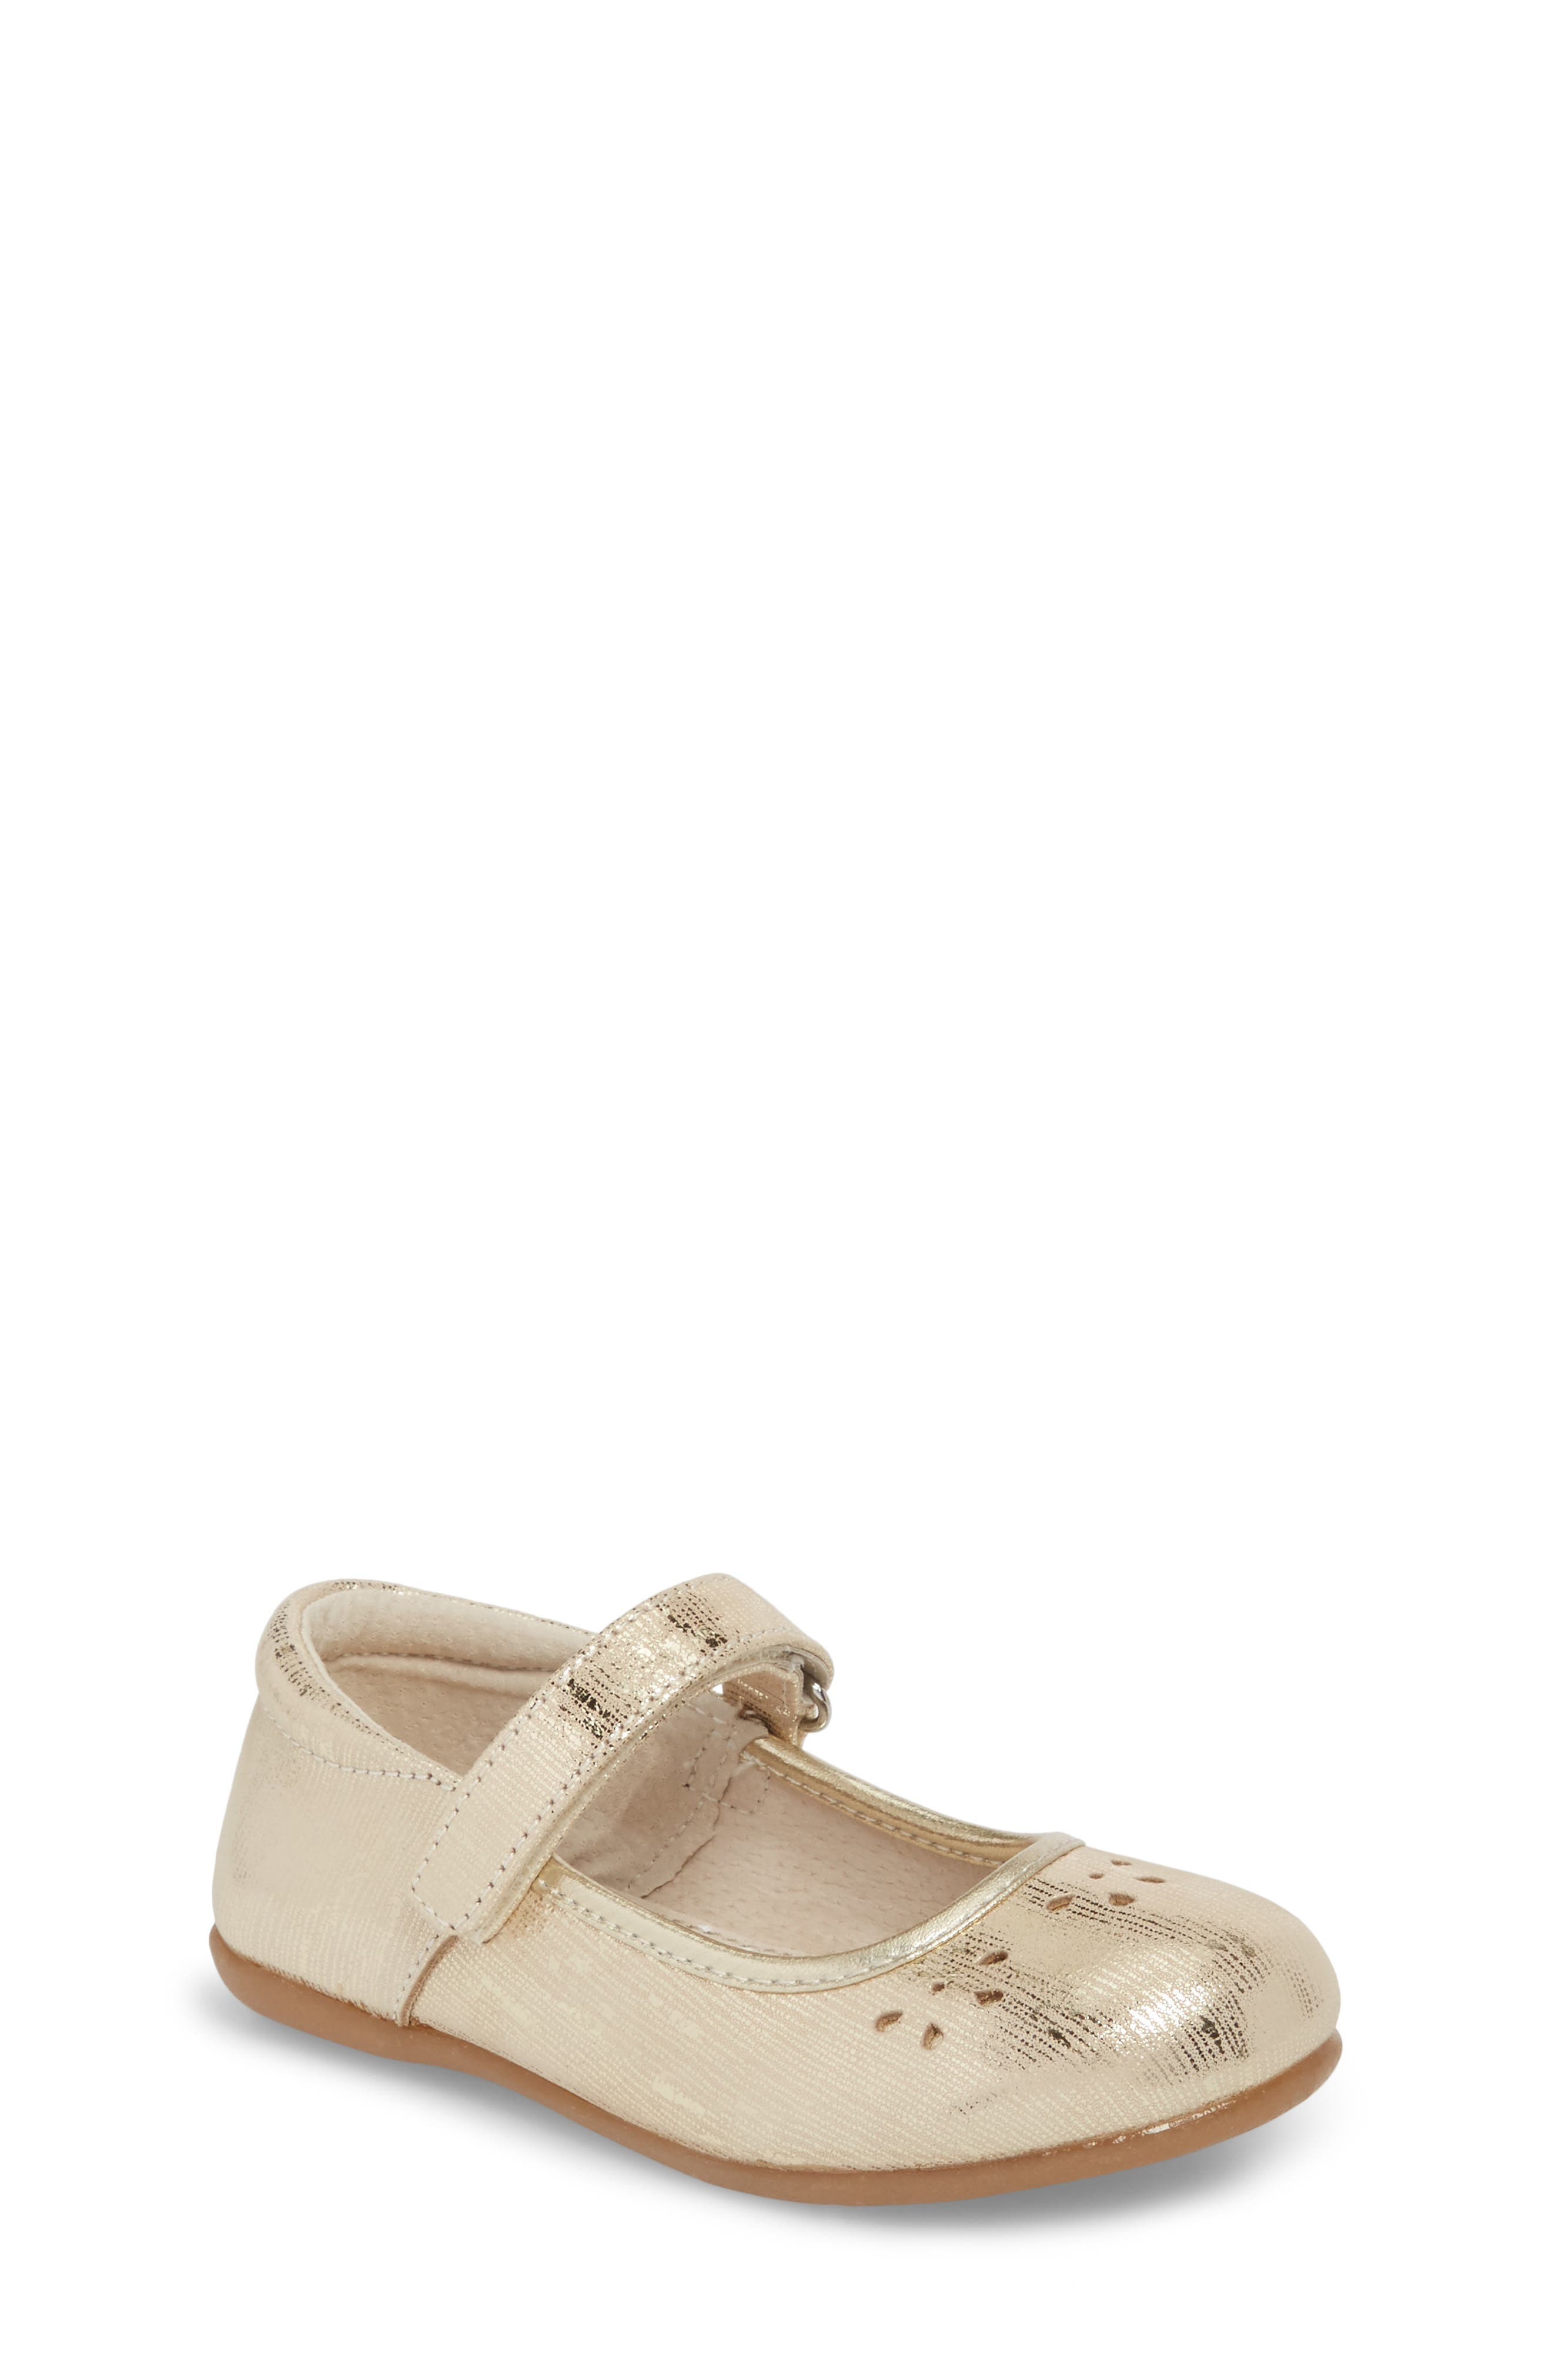 Ginger III Metallic Leather Mary Jane,                         Main,                         color, Gold